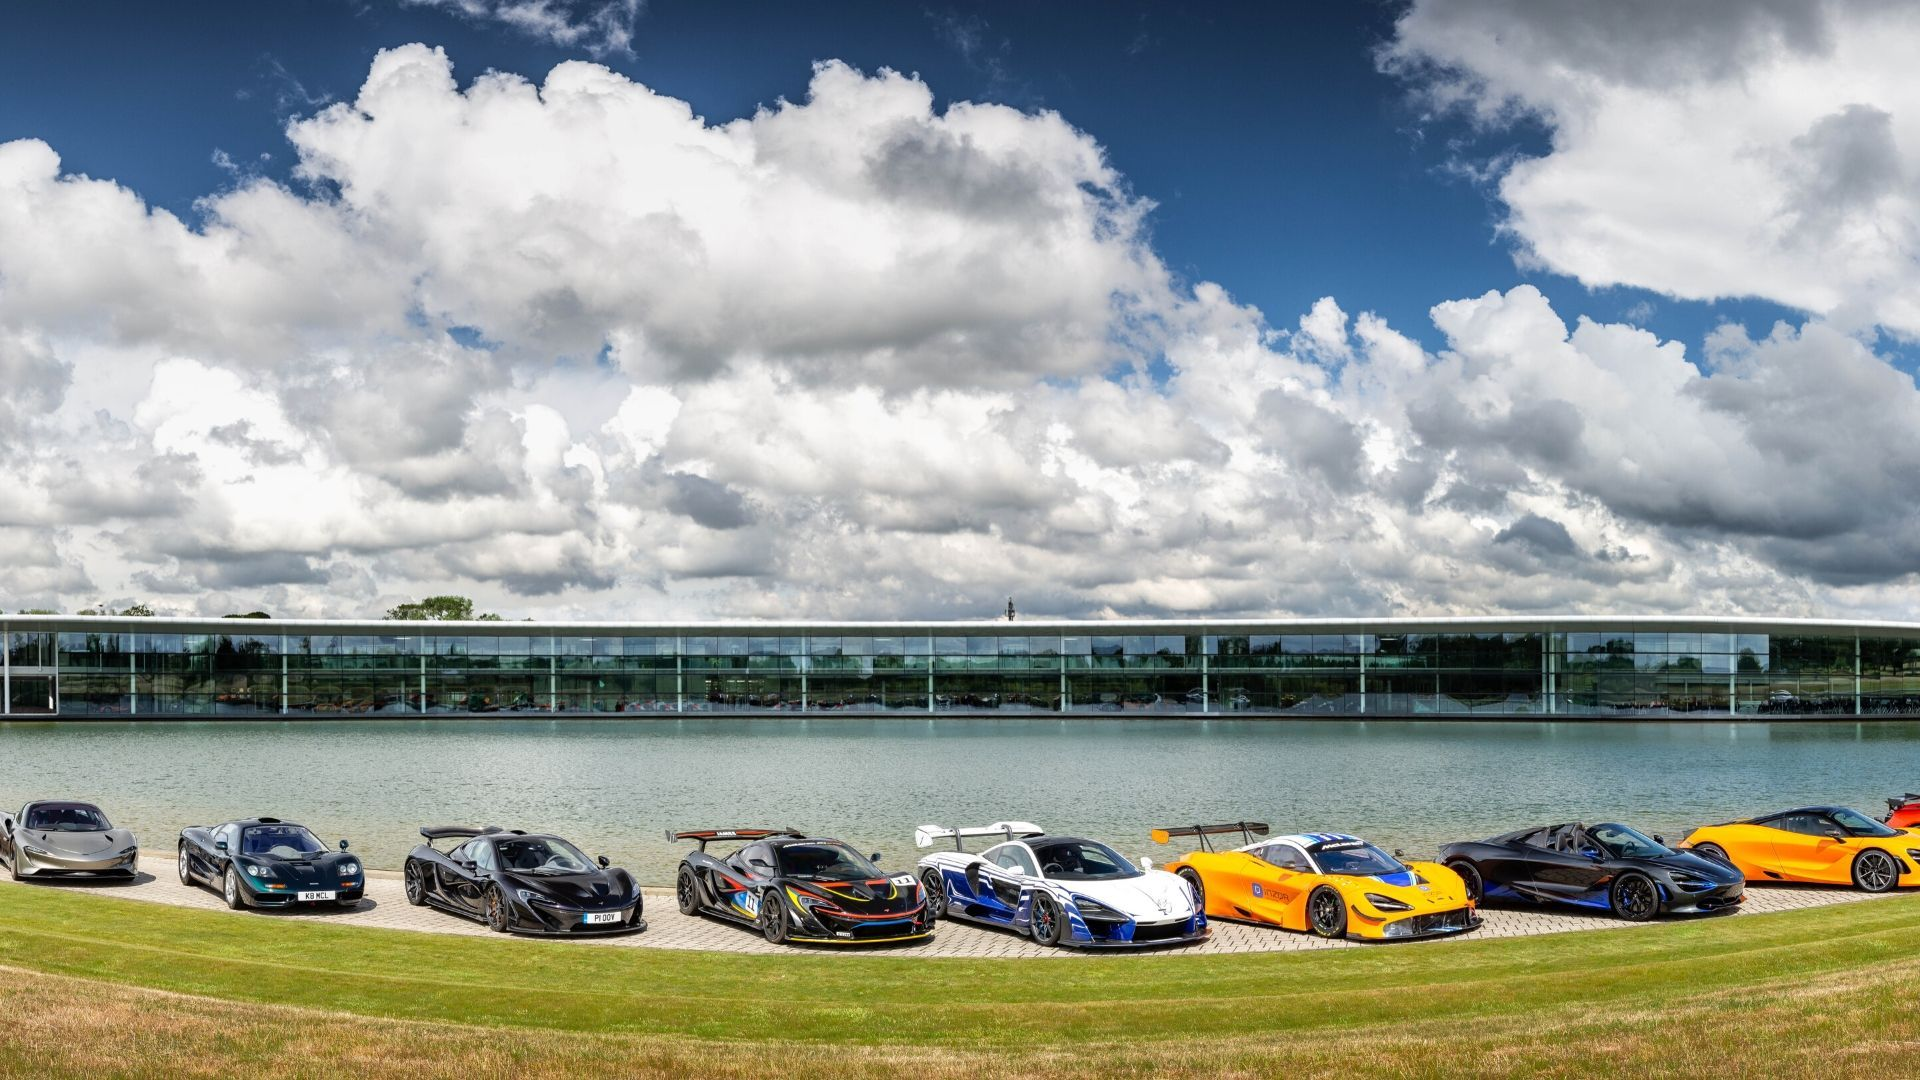 McLaren Considering Selling Its Historic Car Collection